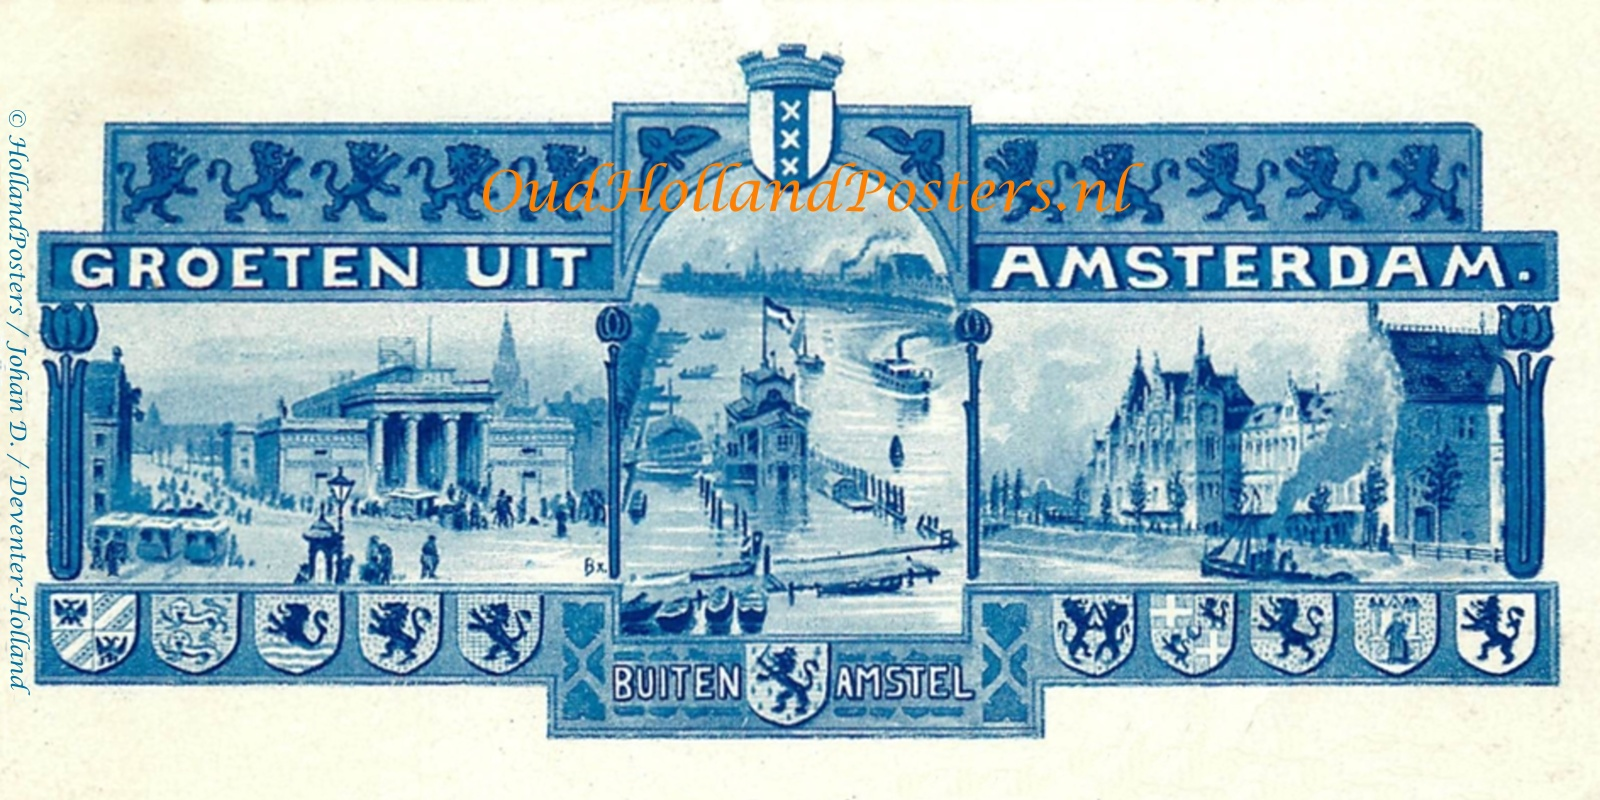 Amsterdam buiten amstel blauw poster ohp OA 63